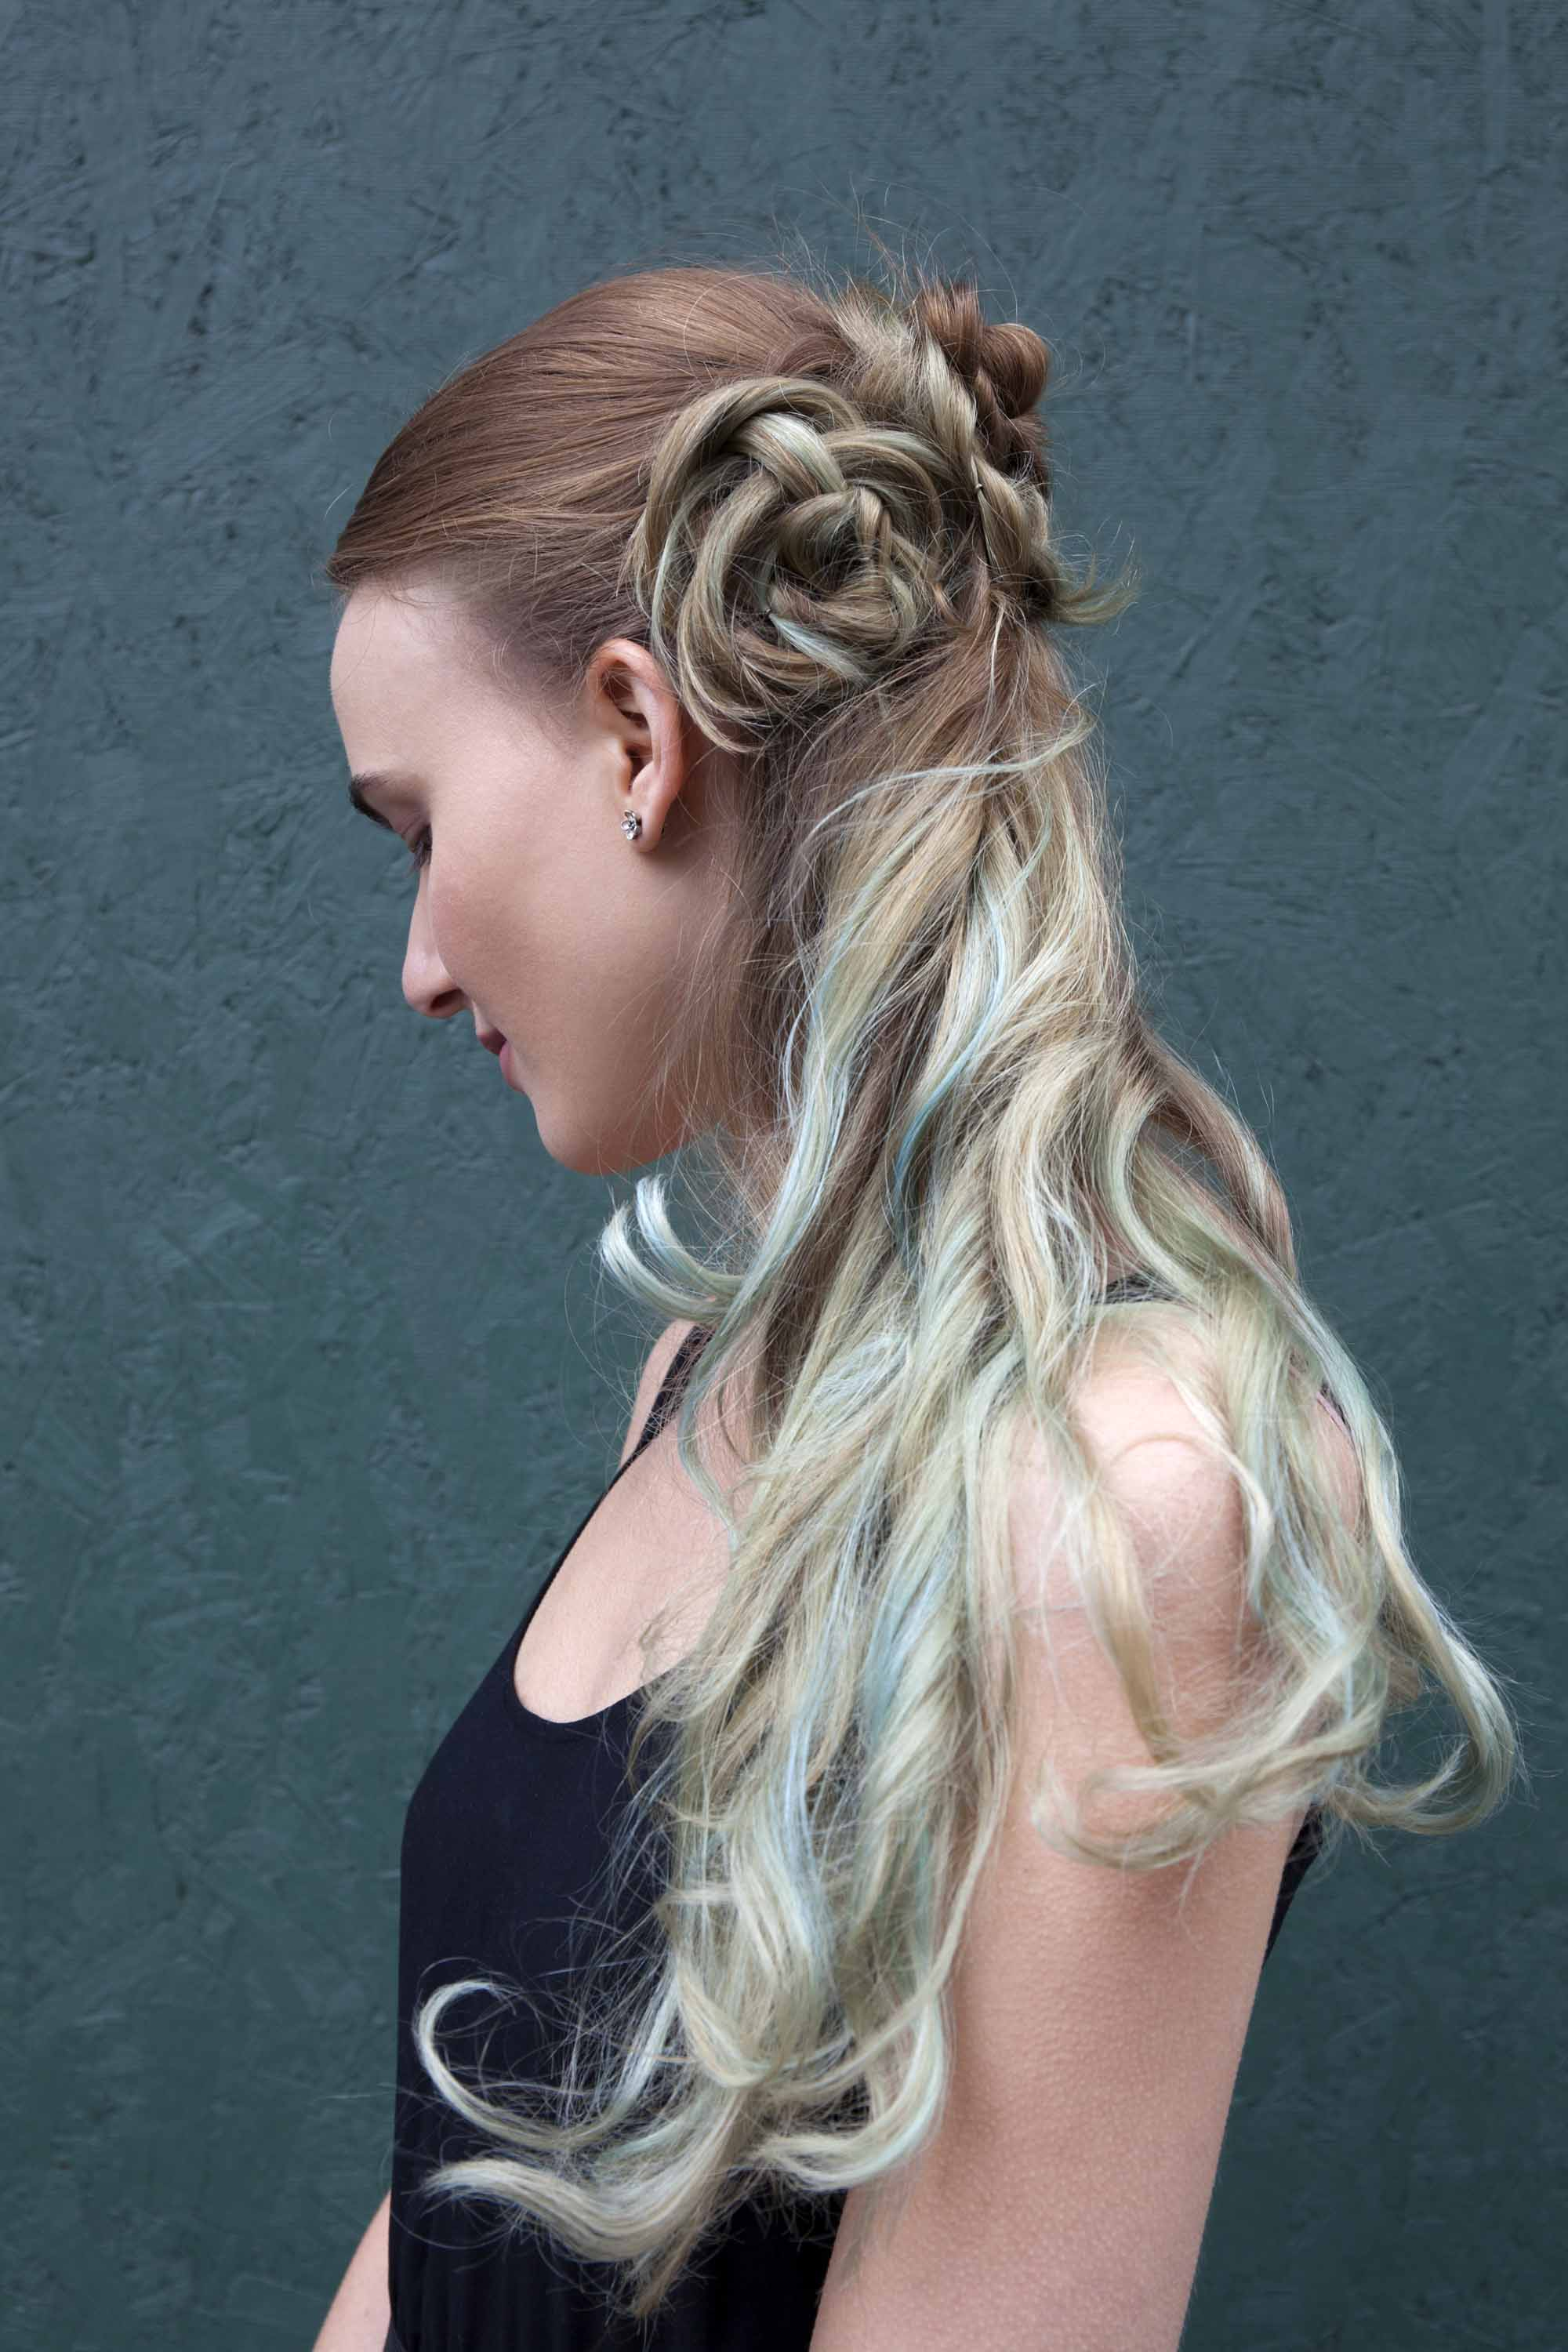 Simple updo ideas you can wear to prom. Flower braid half updo.